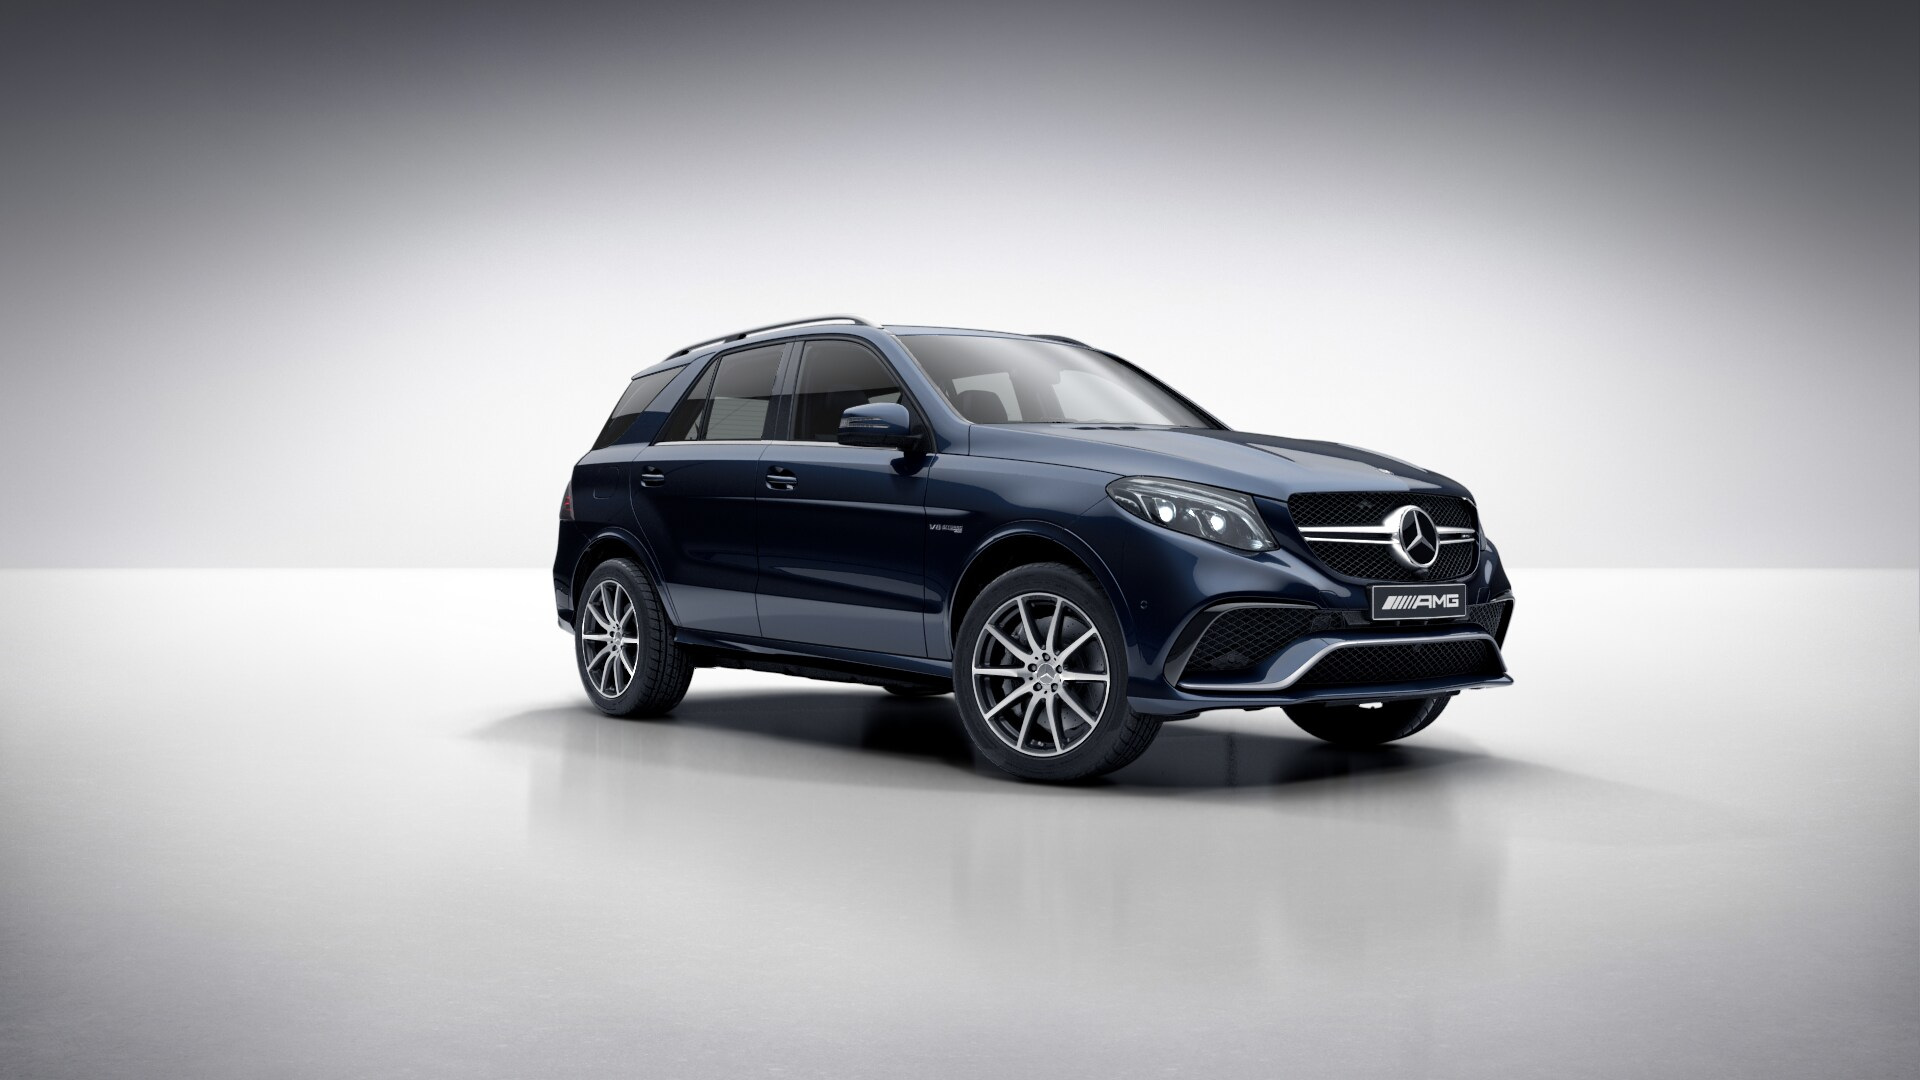 new 2017 mercedes benz gle gle63 amg suv 1727486 mercedes benz of canada new and cpo inventory. Black Bedroom Furniture Sets. Home Design Ideas